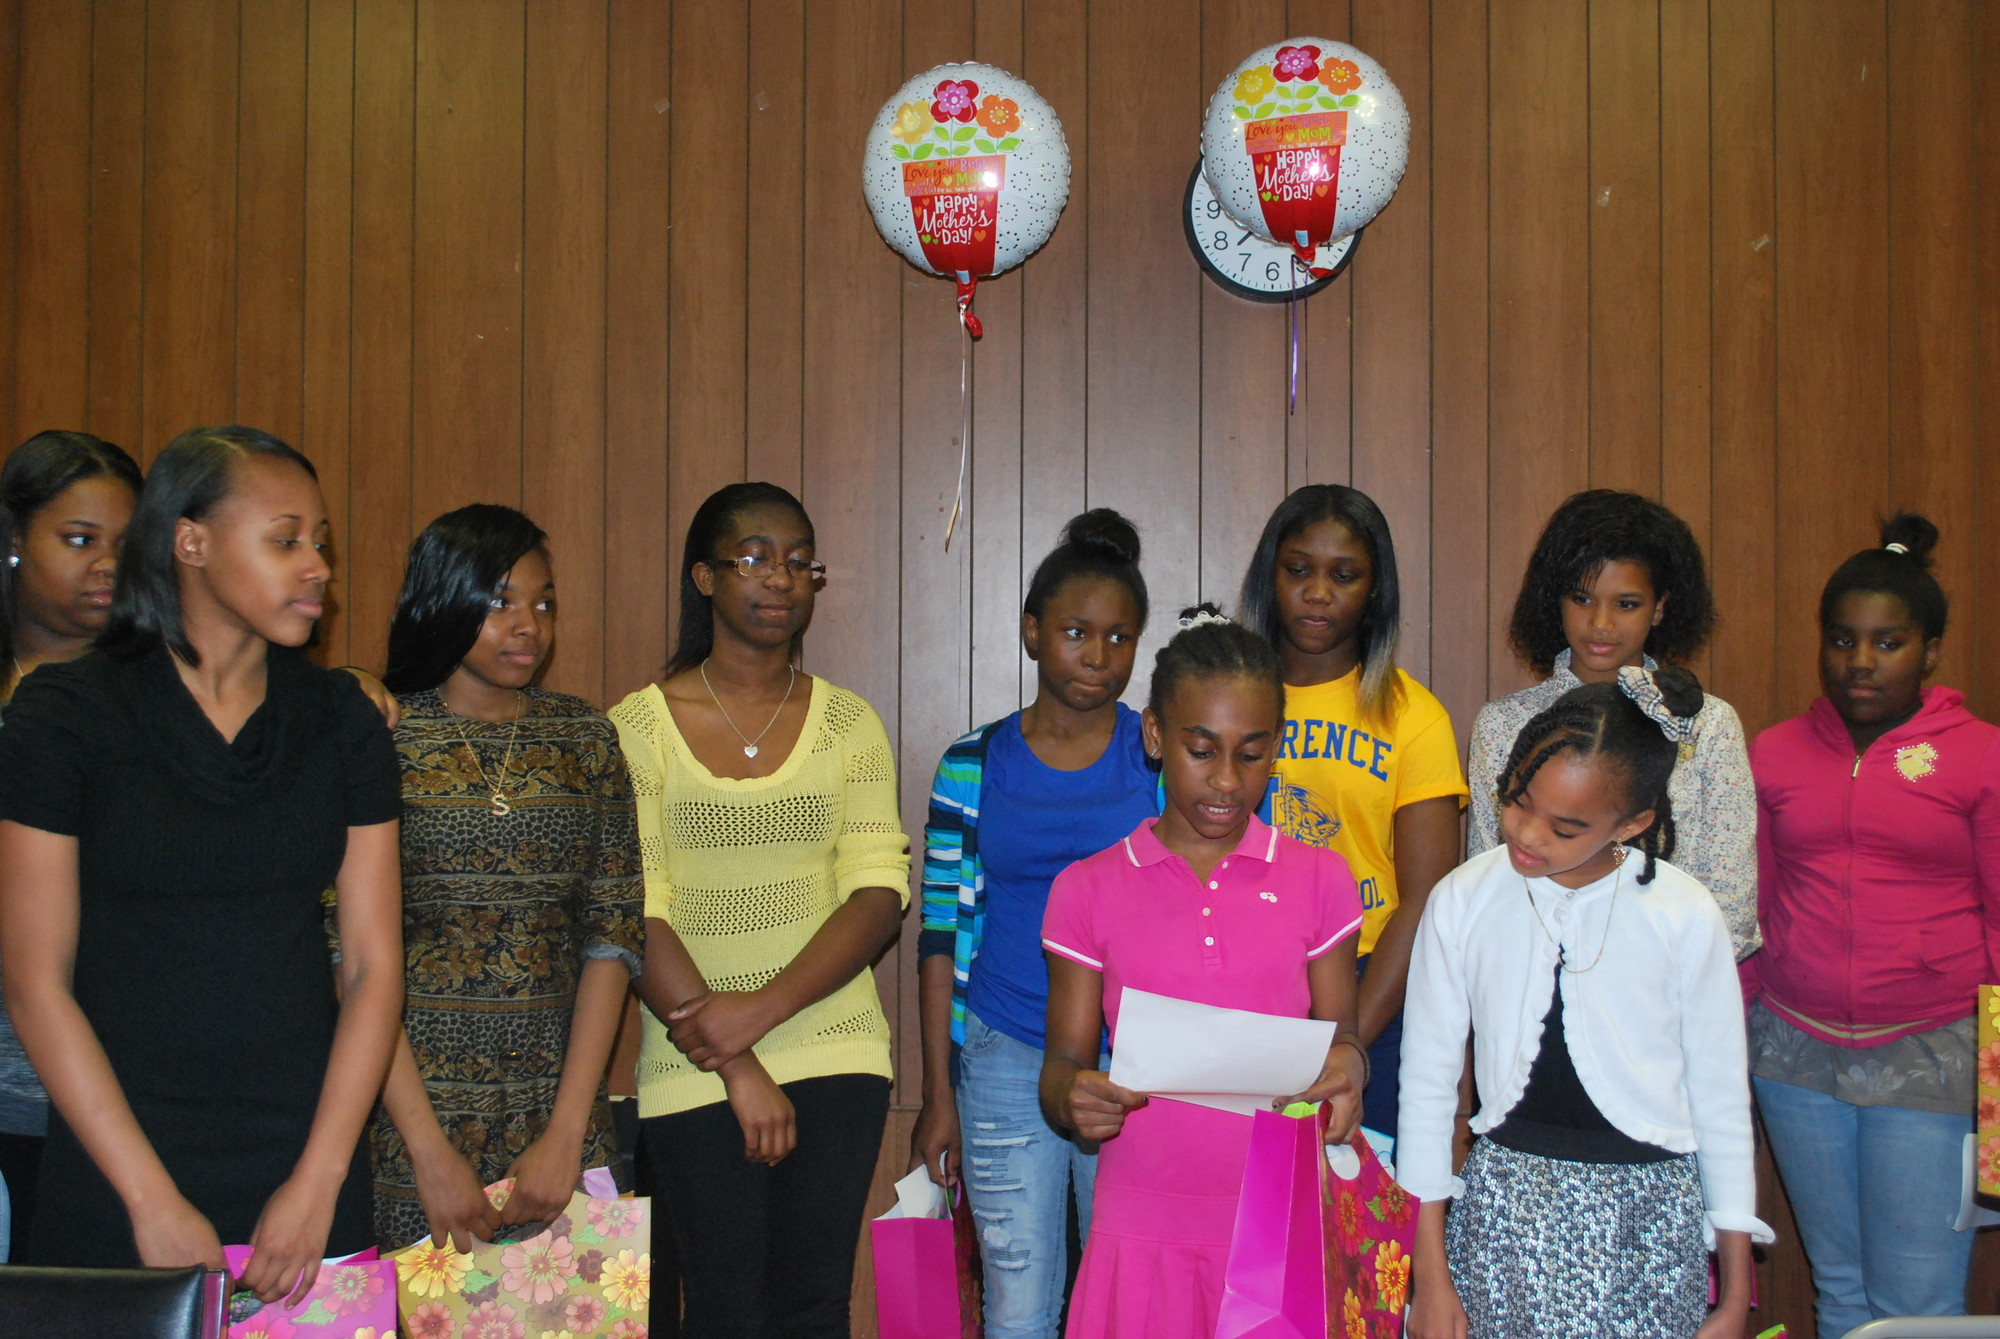 Mother's Day was celebrated early as girls in the fifth through 12th grades honored their moms and other relatives on May 8 during a dinner at the Five Towns Community Center. Fifth-grader Dana Best thanked her mother for being supportive.